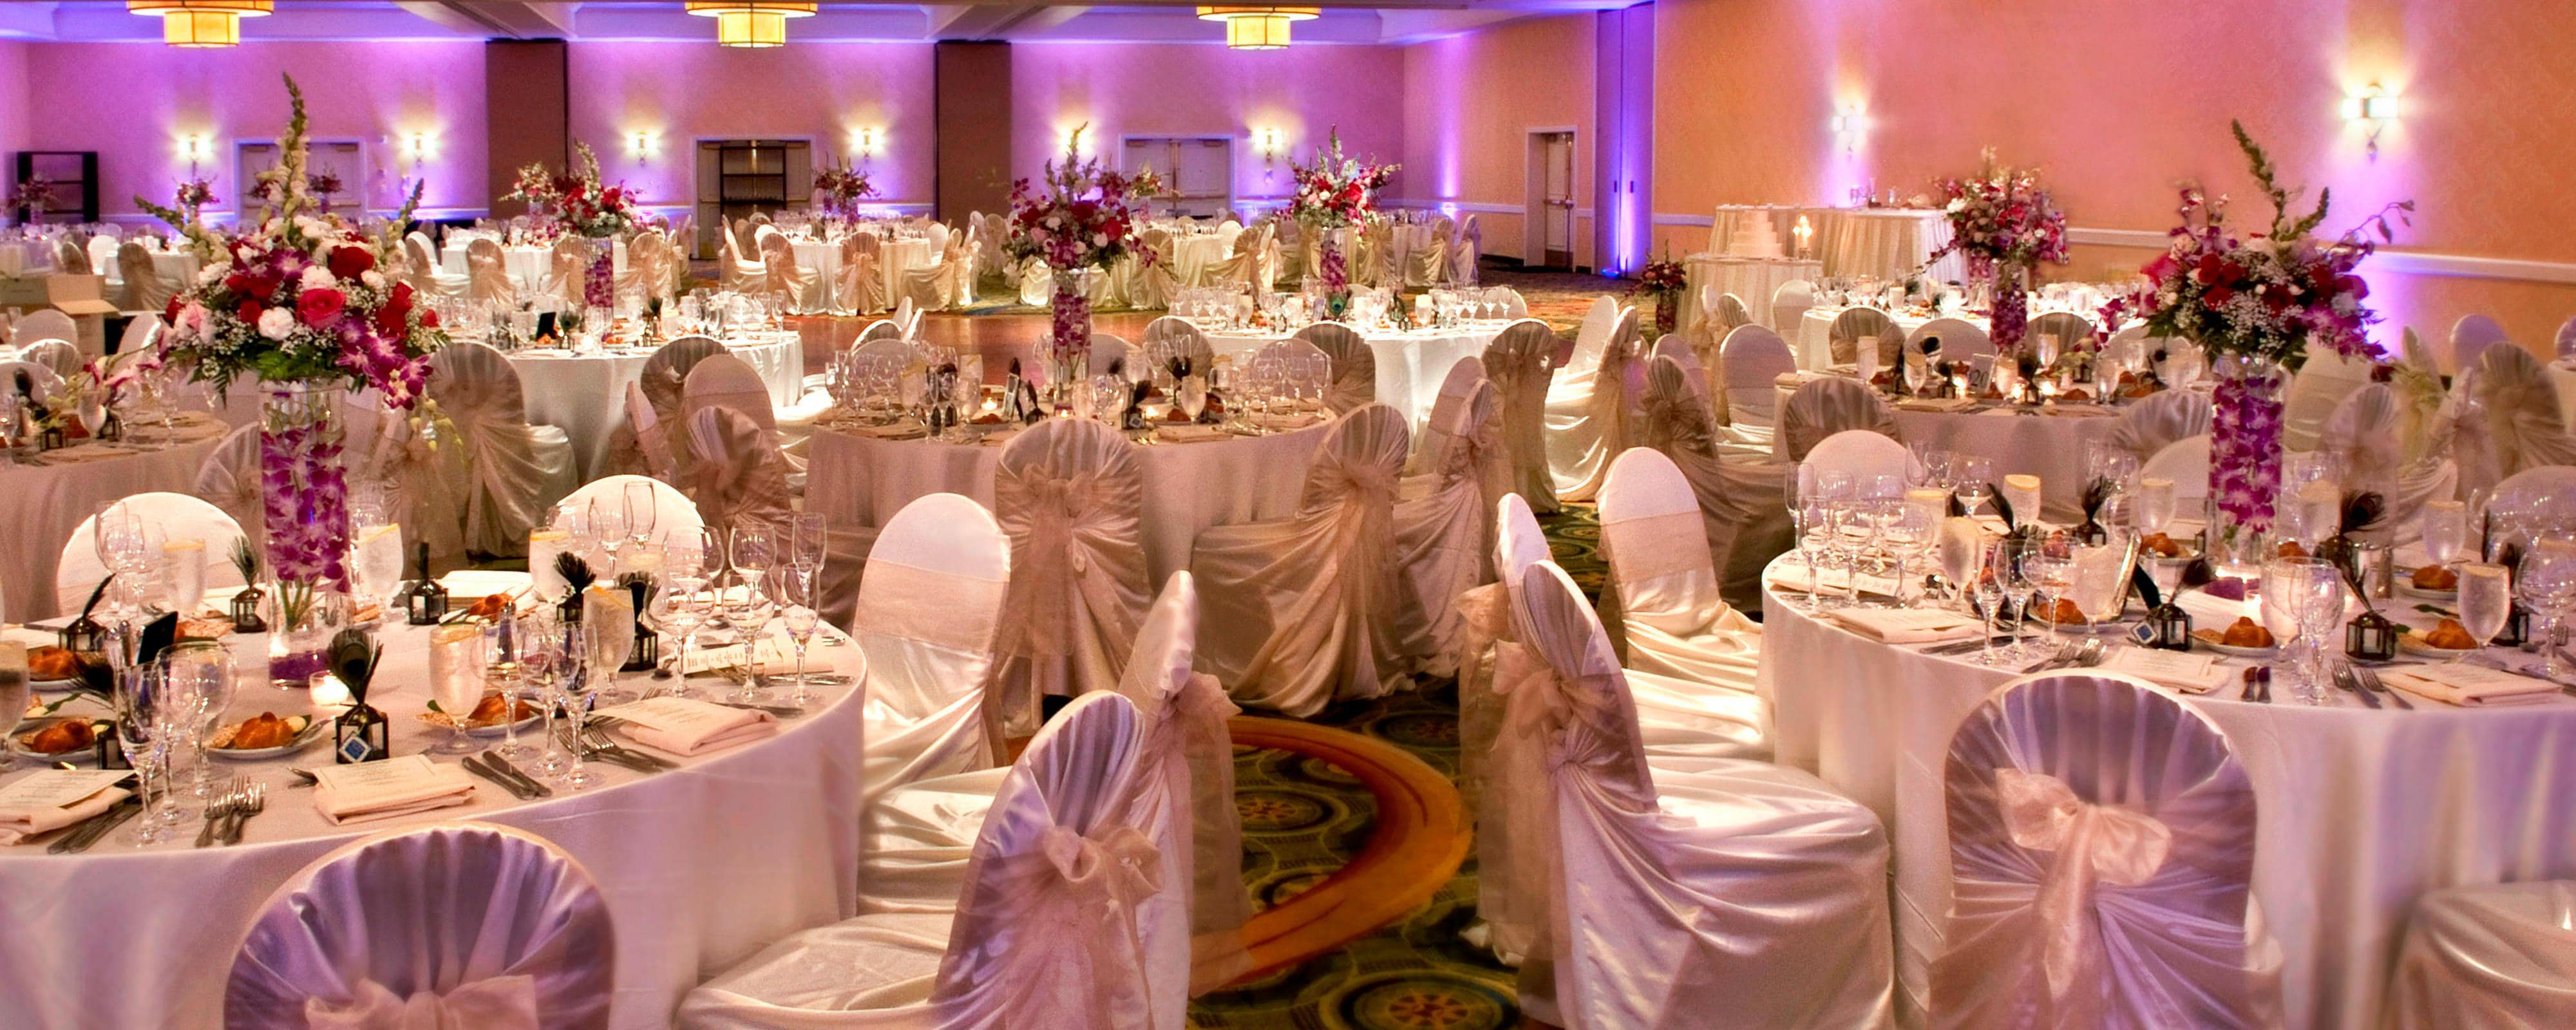 Hudson valley wedding venues westchester marriott hudson valley hotel wedding venue junglespirit Choice Image